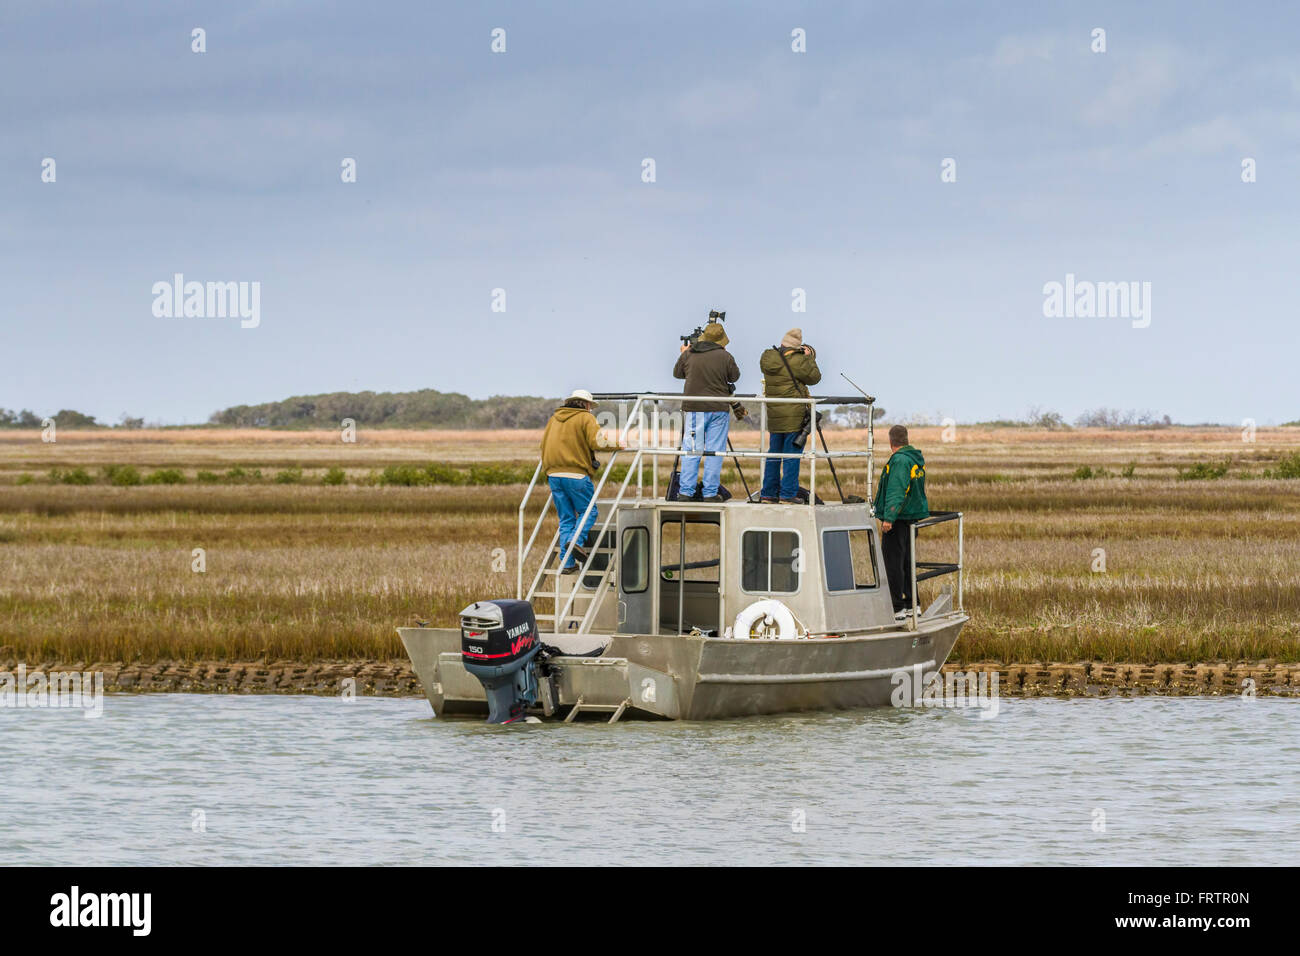 Photographers looking for Whooping Cranes in Aransas Pass National Wildlife Refuge. - Stock Image